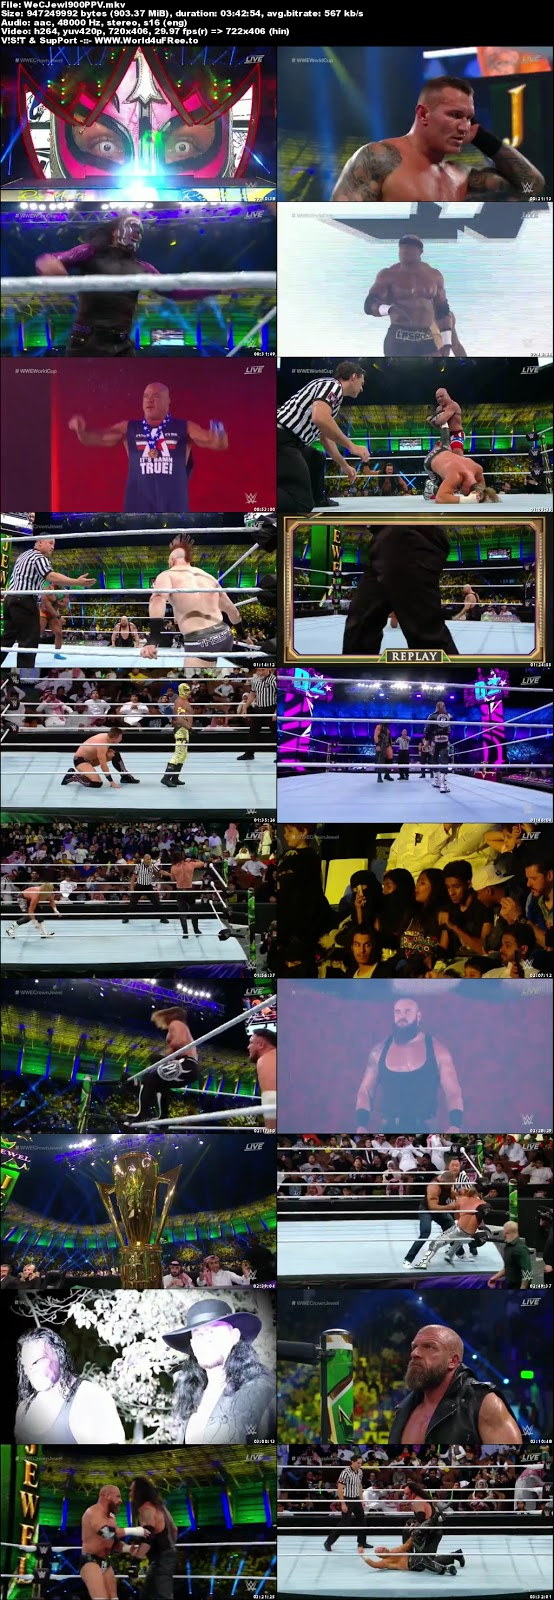 WWE Crown Jewel 2018 PPV WEBRip 480p 900MB x264 Download tv show WWE Crown Jewel 2018 PPV 900mb 720p compressed small size free download or watch online at world4ufree.fun